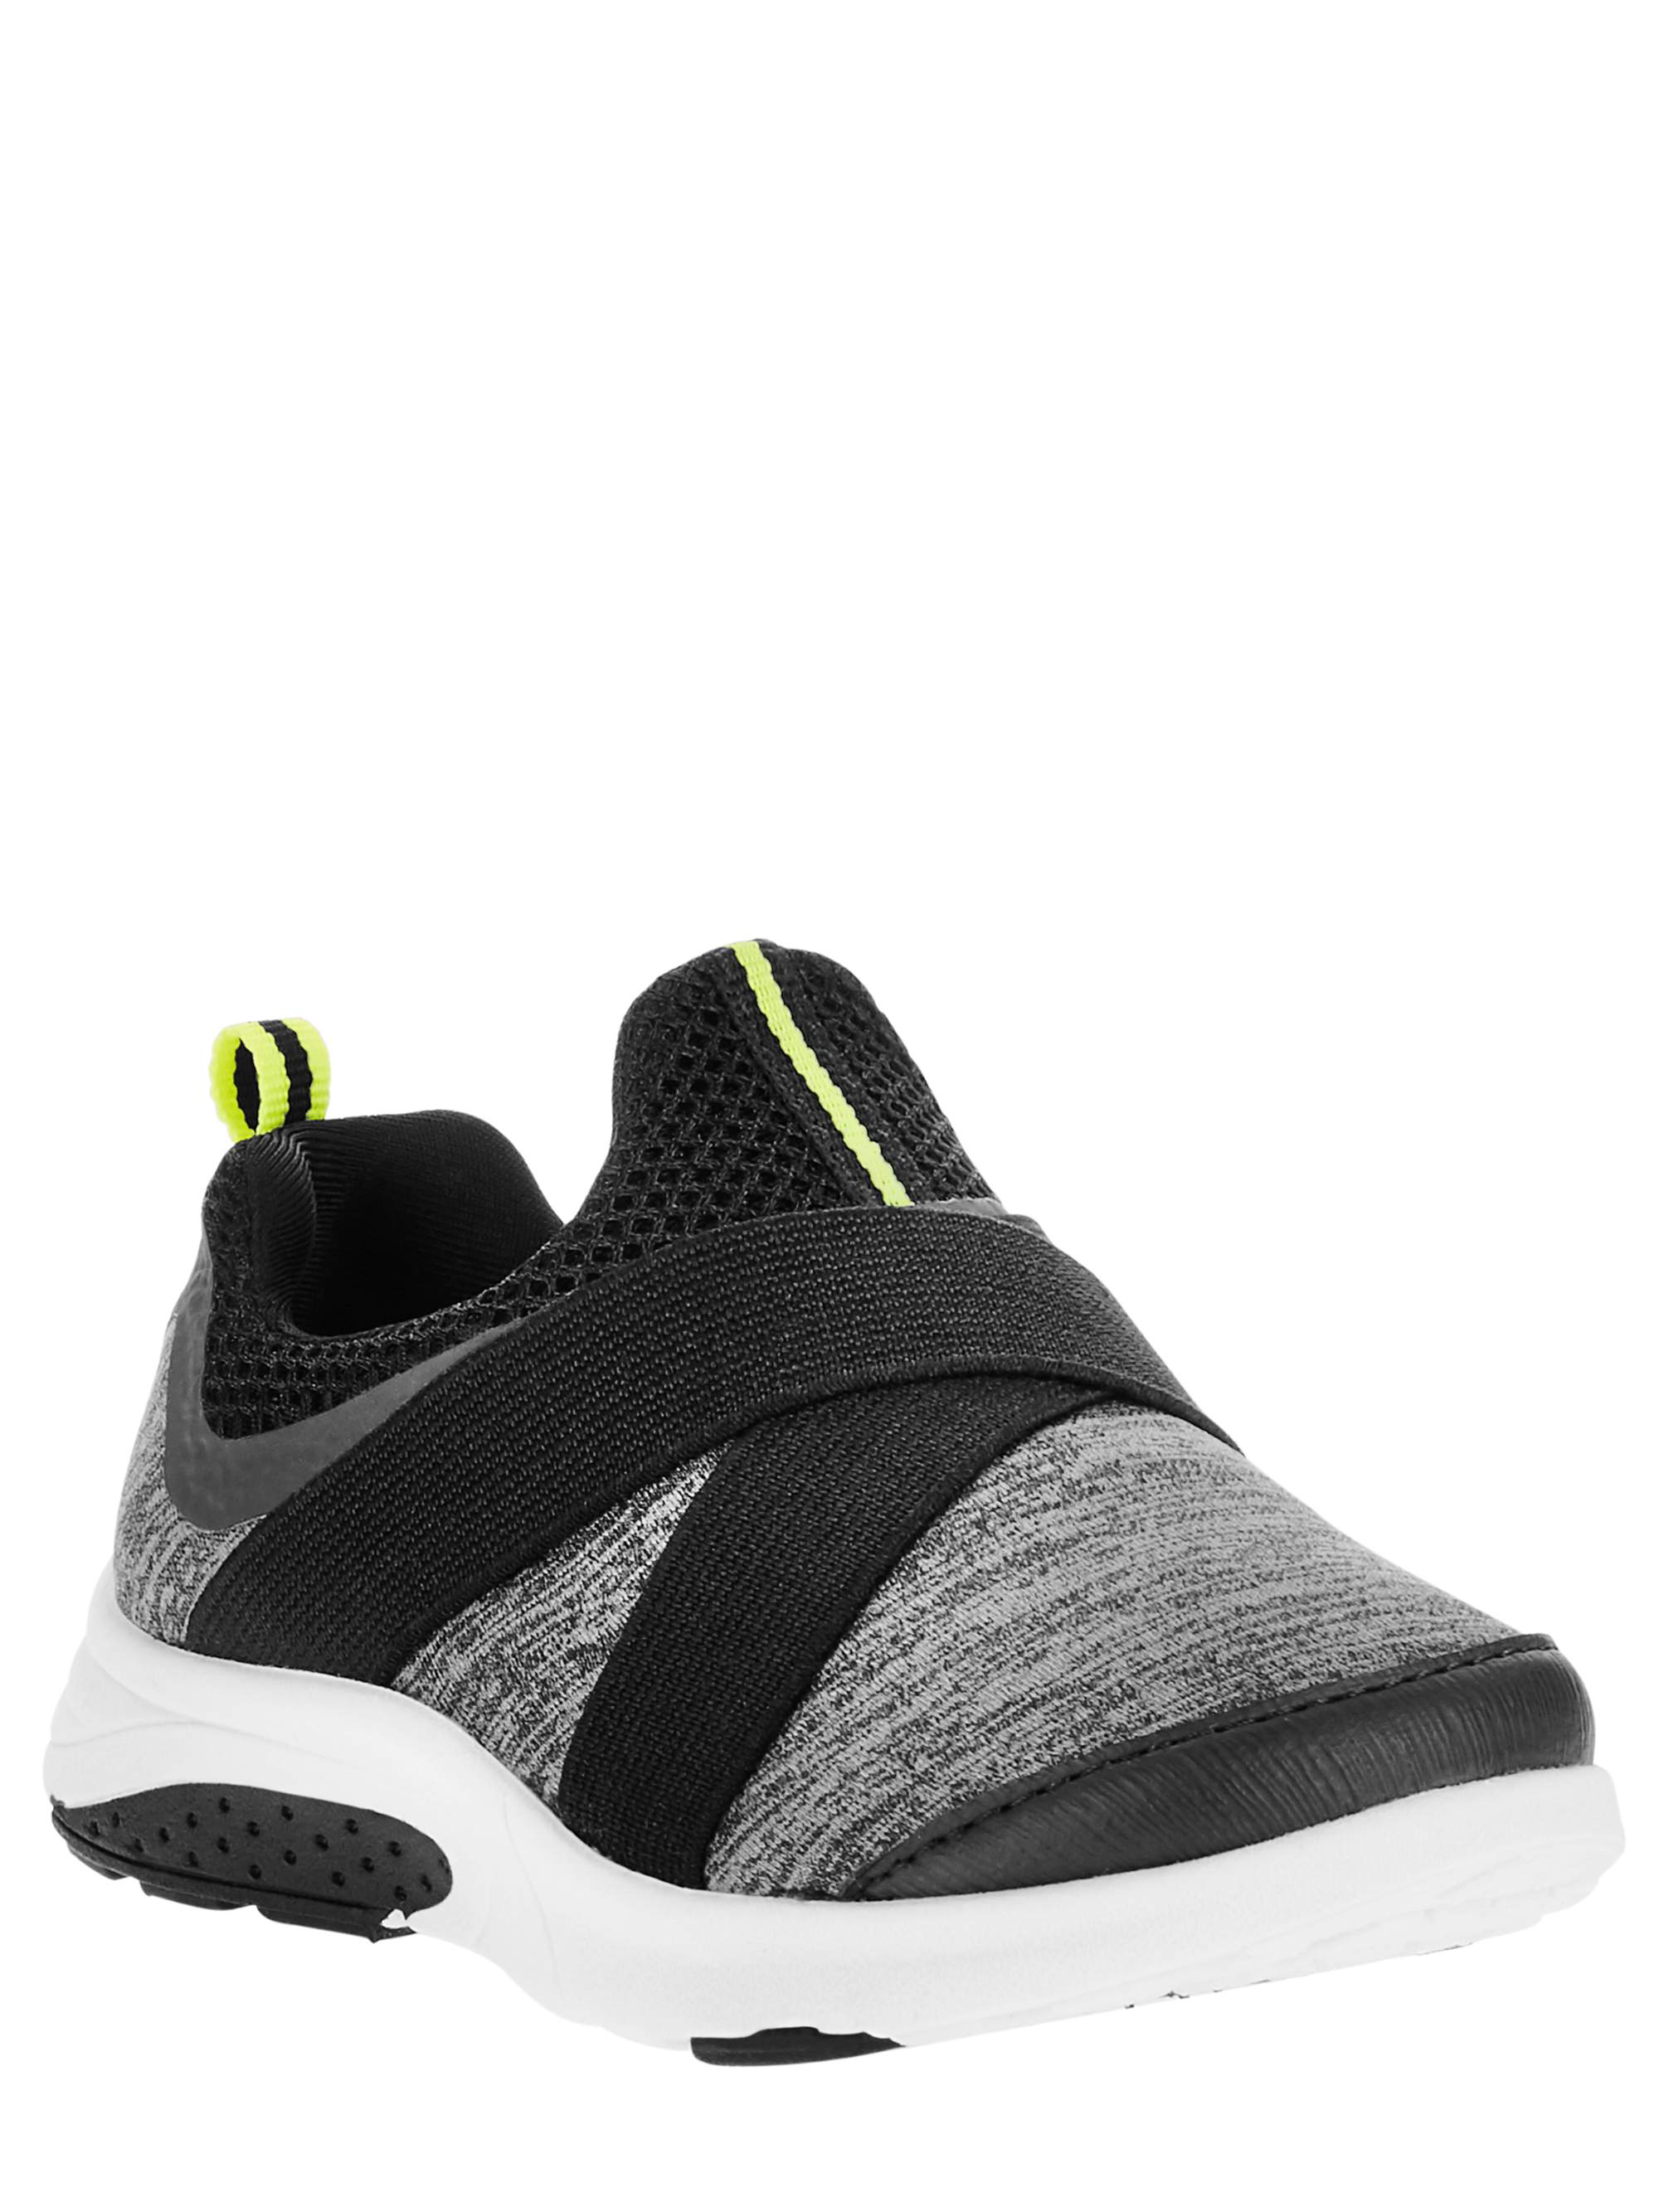 Athletic Works Toddler Boys' Casual Slip-on Sneaker